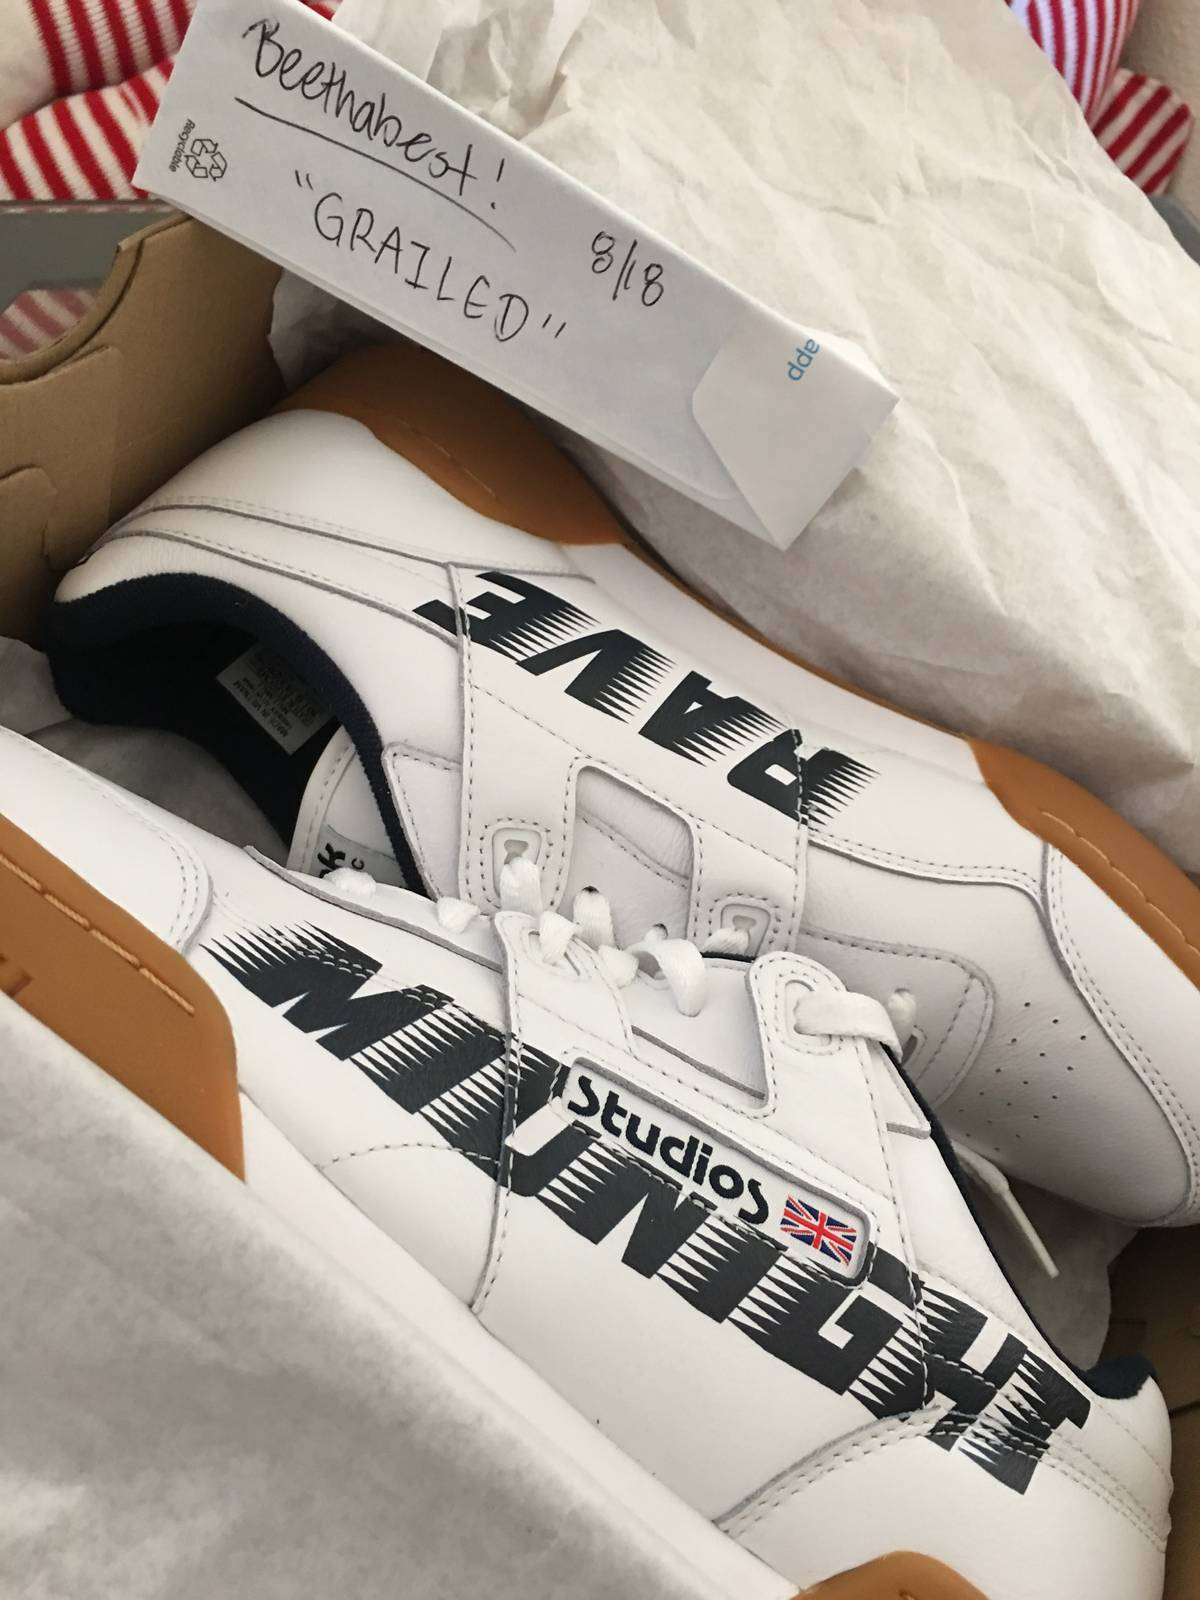 a0196dc3bc38 Midnight Studios Reebok X Midnight Studios Collab Size 10 - Low-Top  Sneakers for Sale - Grailed